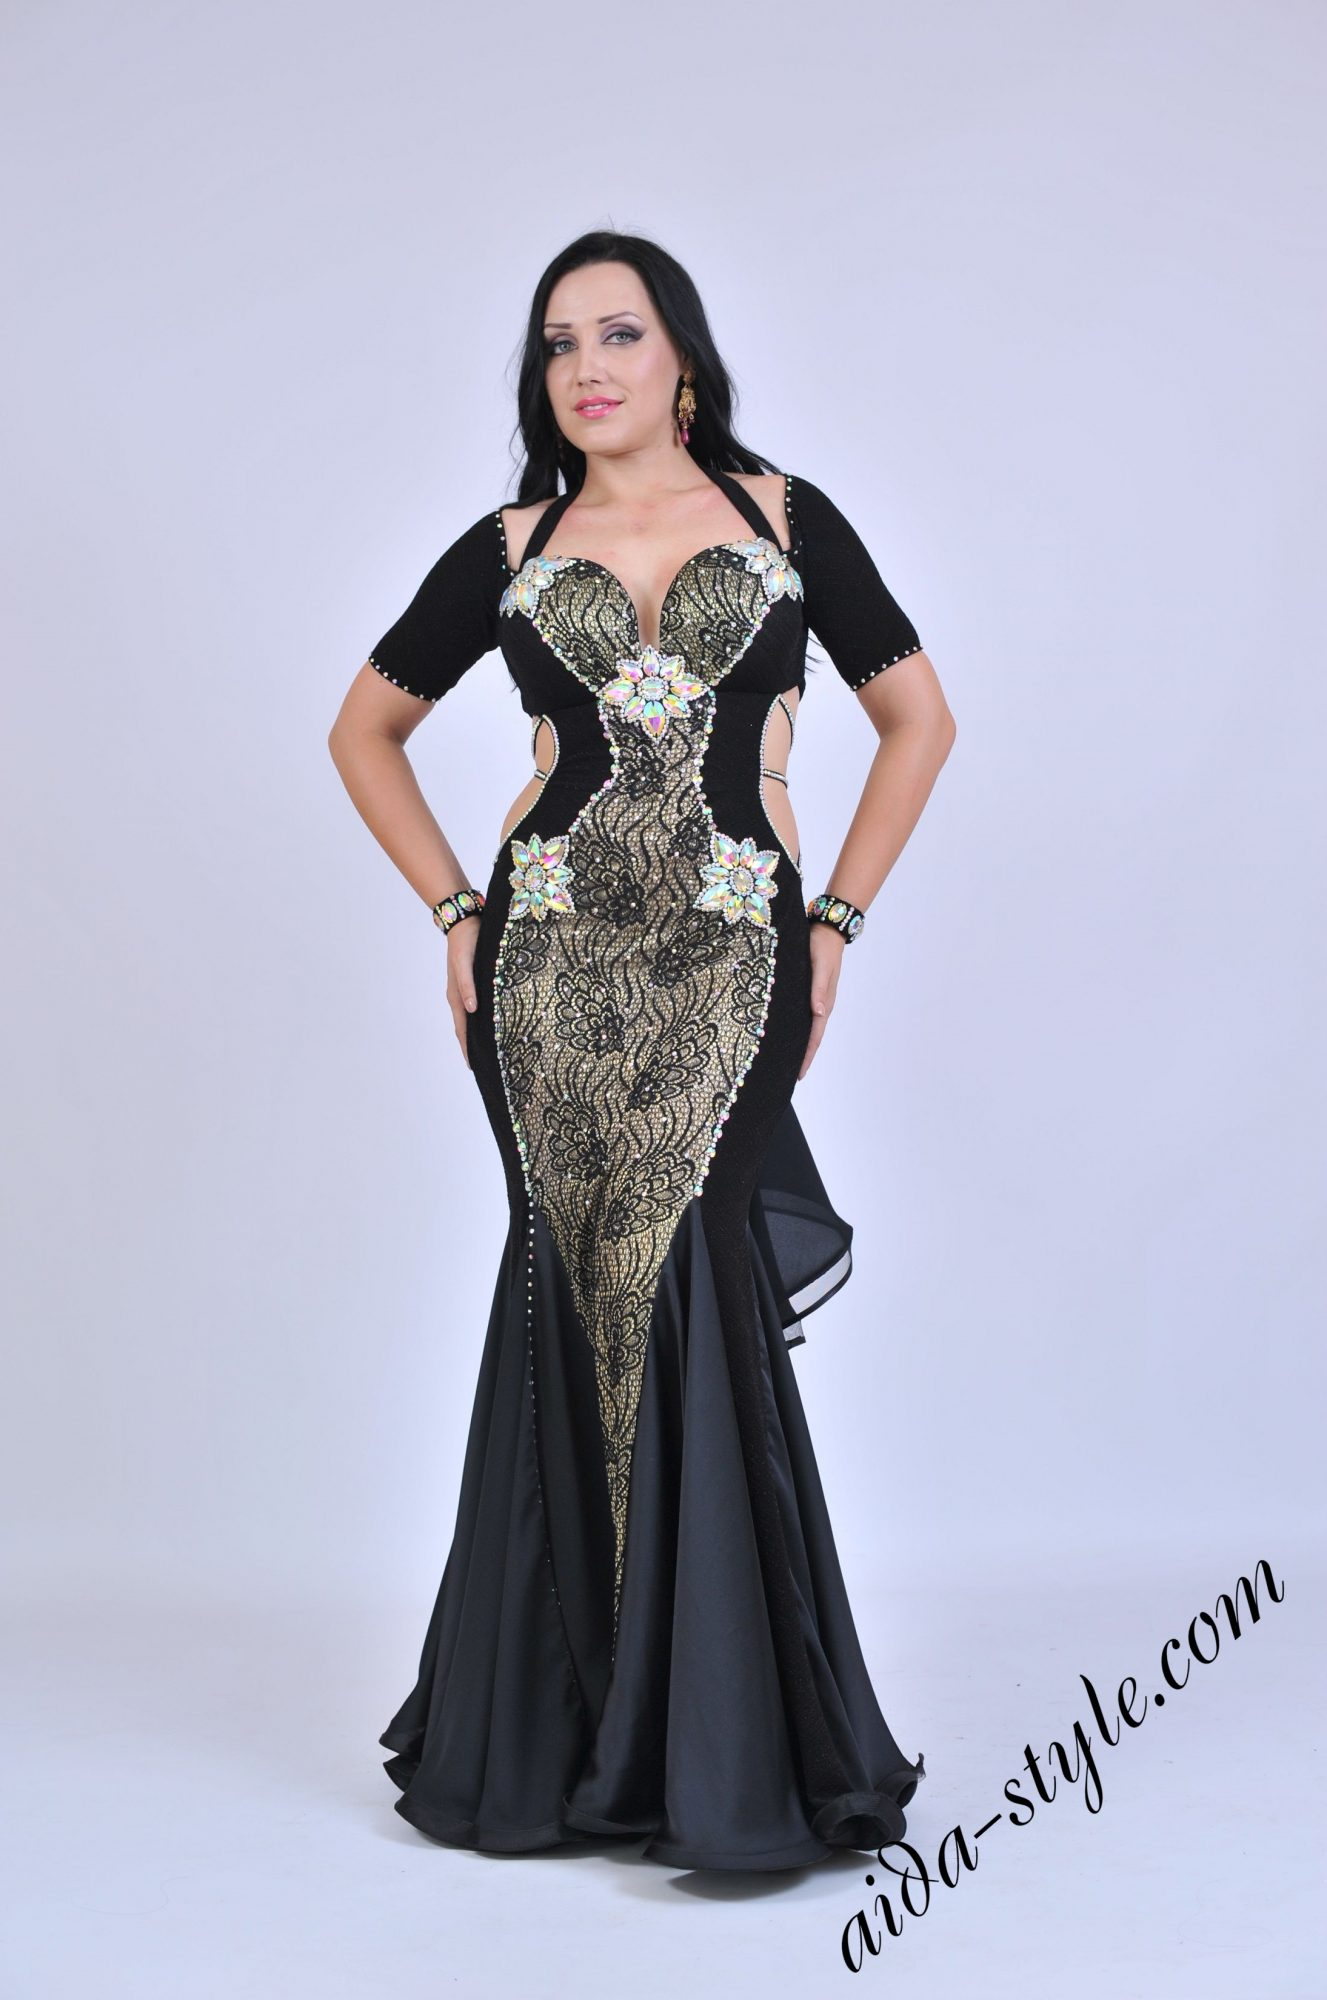 Black belly dance dress with covered belly and bolero